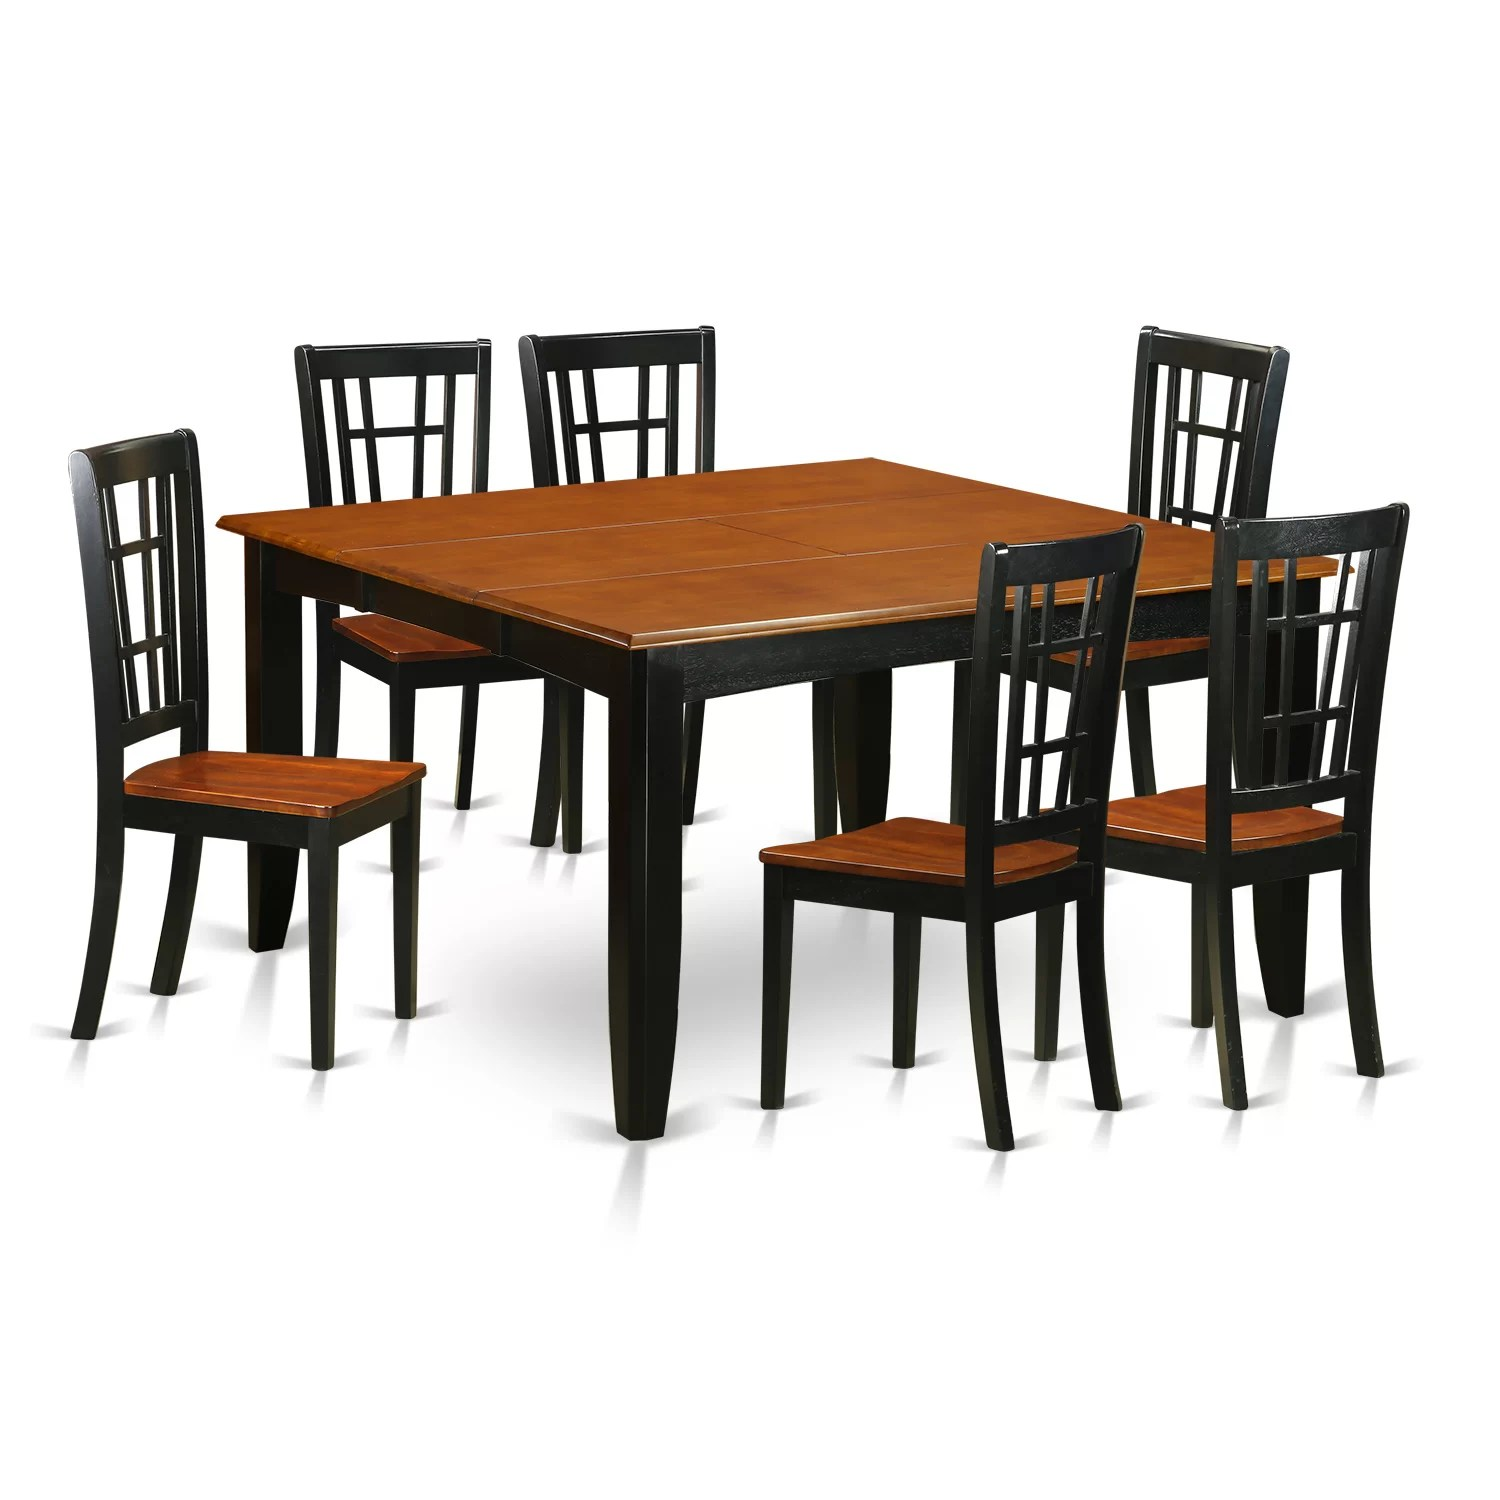 6 Dining Room Chairs East West Parfait 7 Piece Dining Set Wayfair